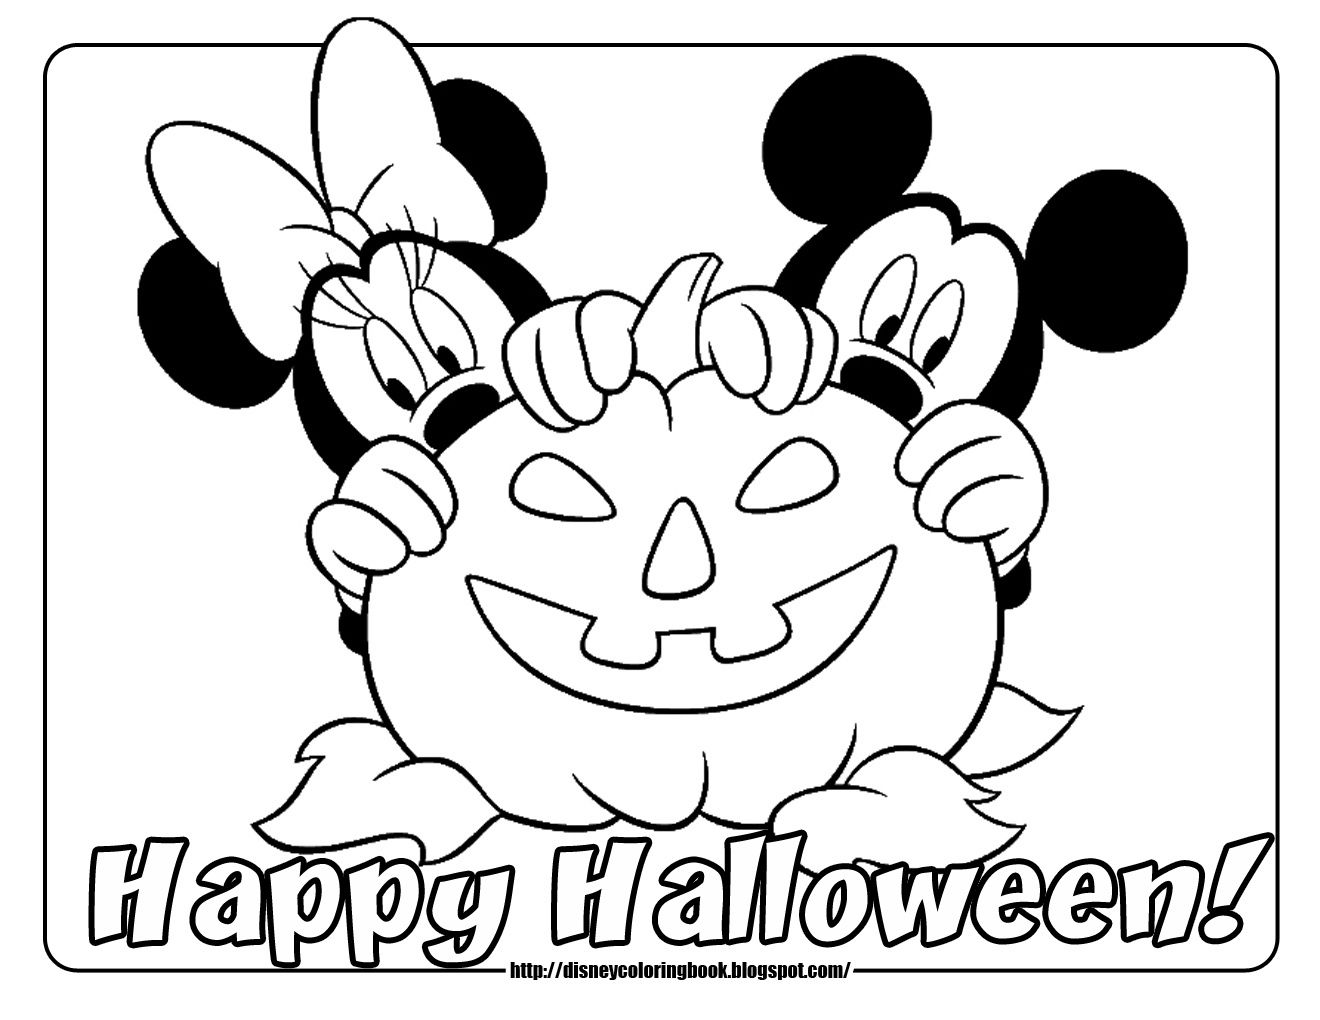 Disney Coloring Pages and Sheets for Kids | Color Halloween-Children ...